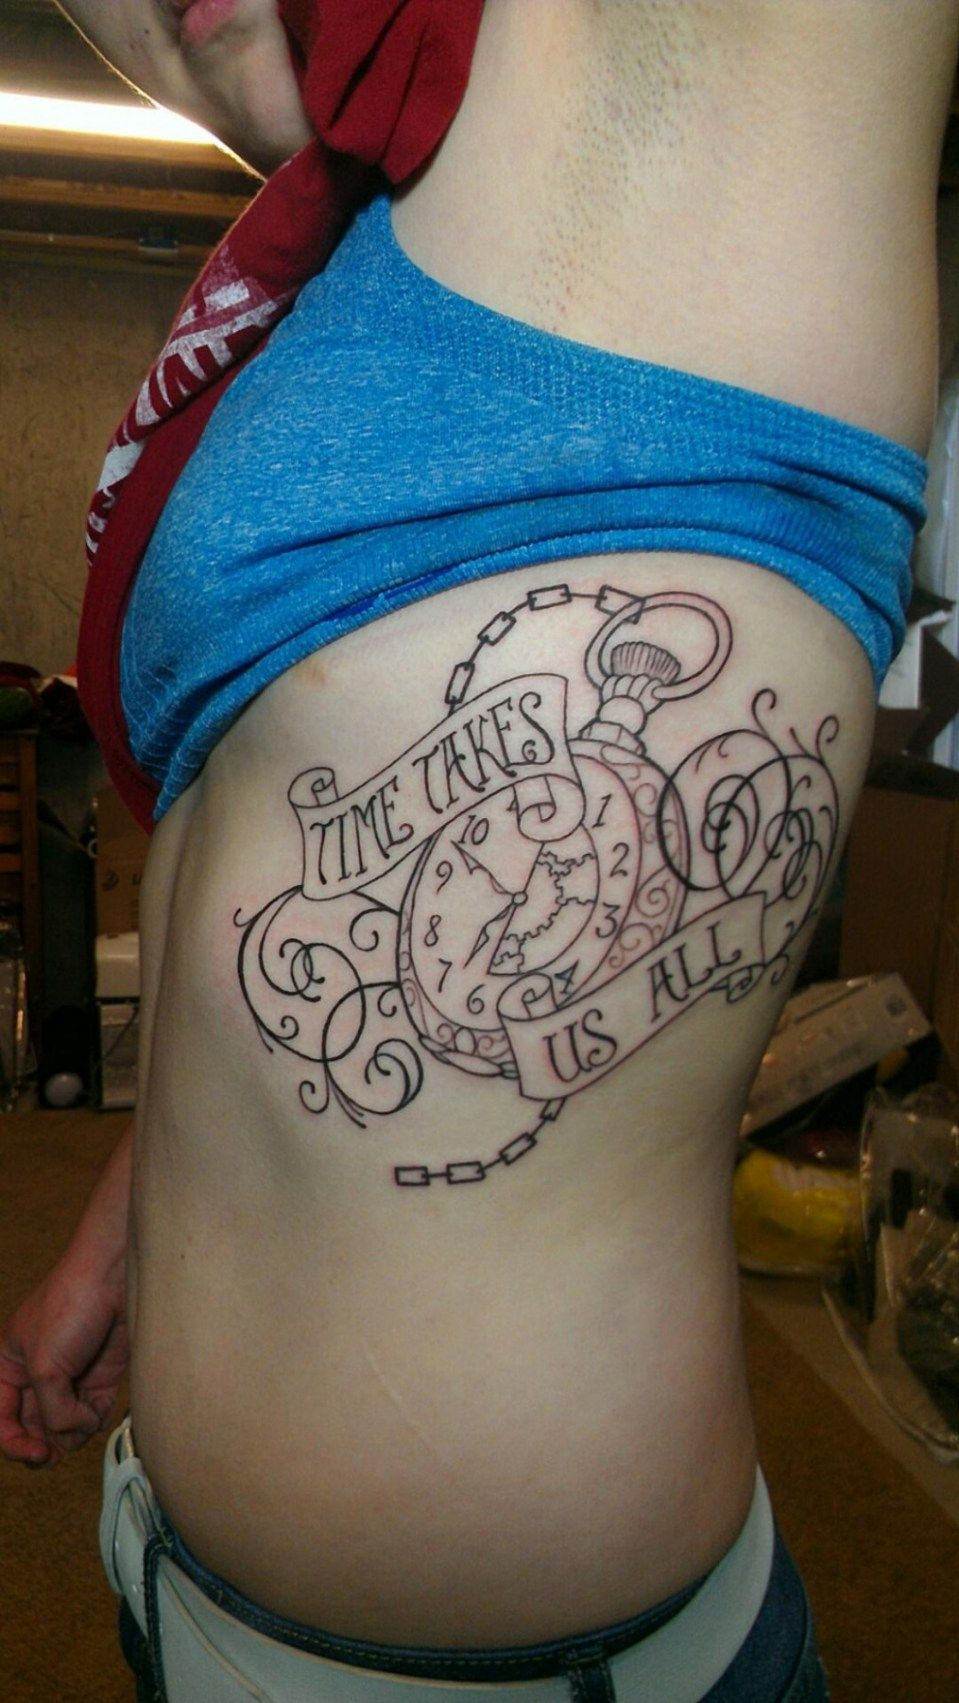 11 Regret My Tattoo Reddit Tips You Need To Learn Now Regret My Tattoo Reddit Tattoos I Tattoo Tattoo Models